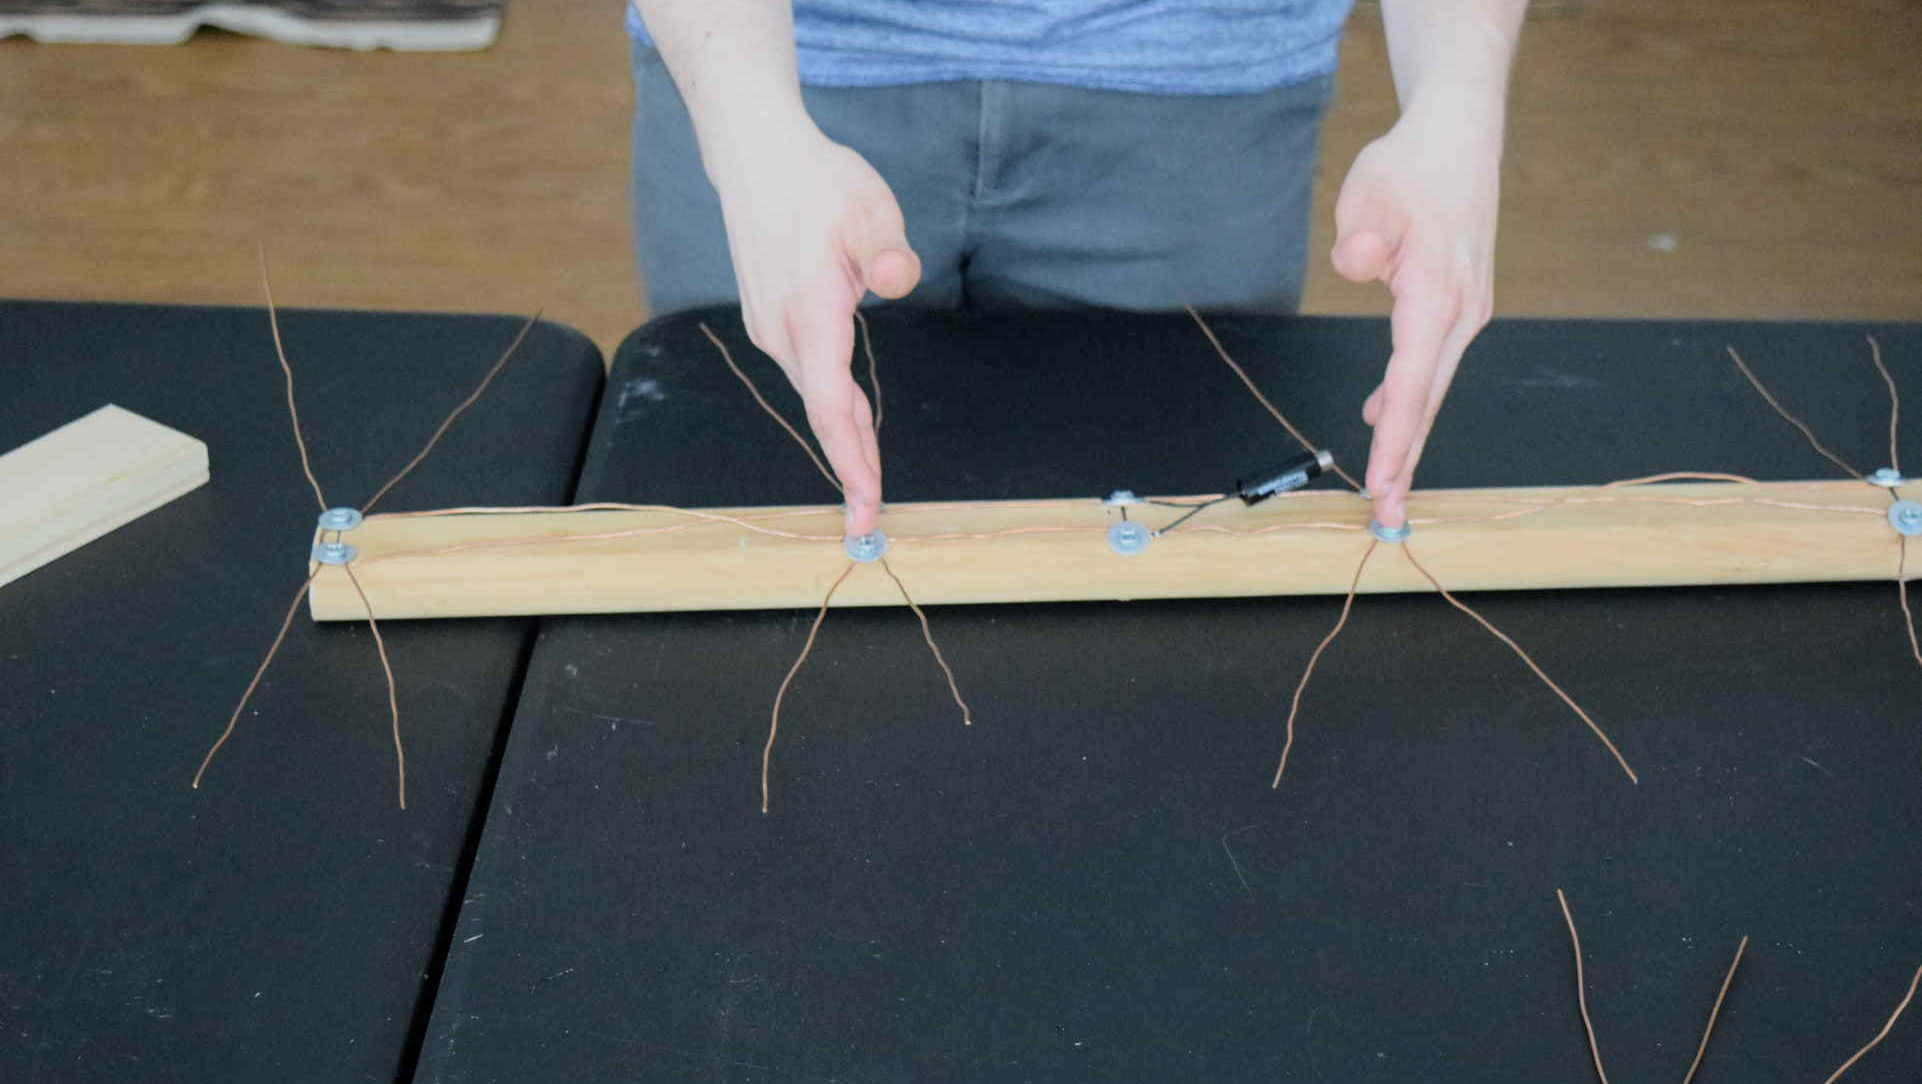 How to Fix Your Bad TV Reception with a Homemade HDTV Antenna - iFixit